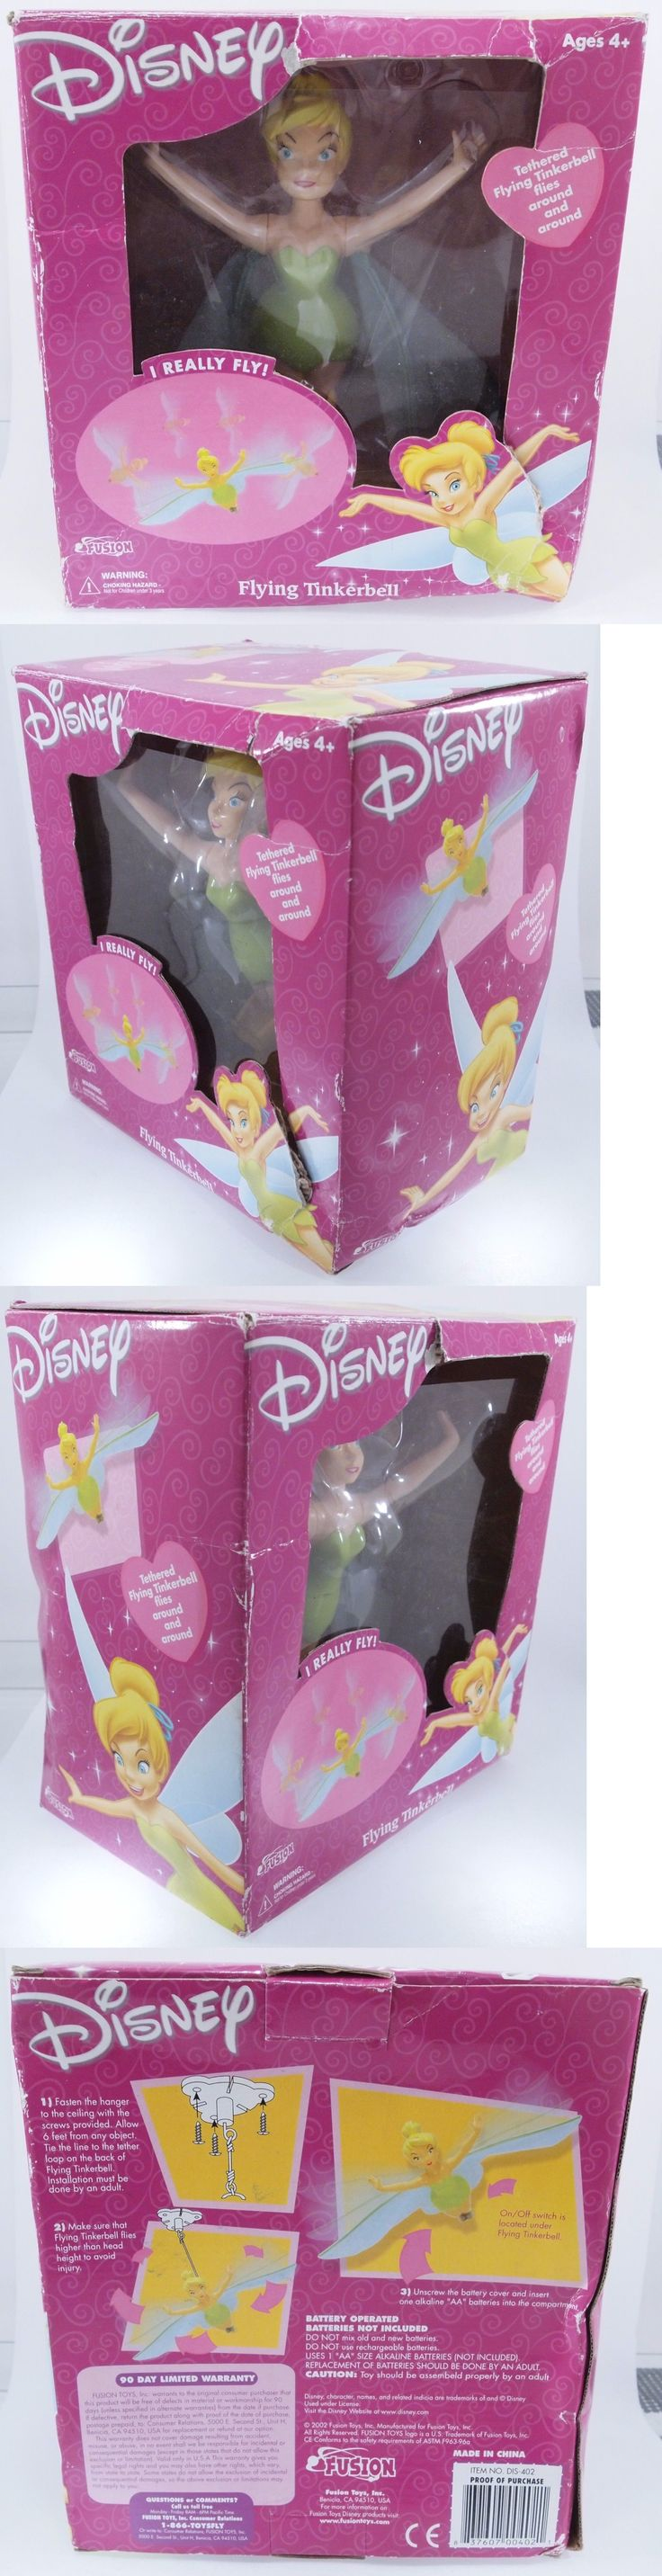 Tinker Bell Peter Pan 146041: Rare Disney 2002 Tethered Flying Tinkerbell By Fusion Toys New In The Box! -> BUY IT NOW ONLY: $33.98 on eBay!